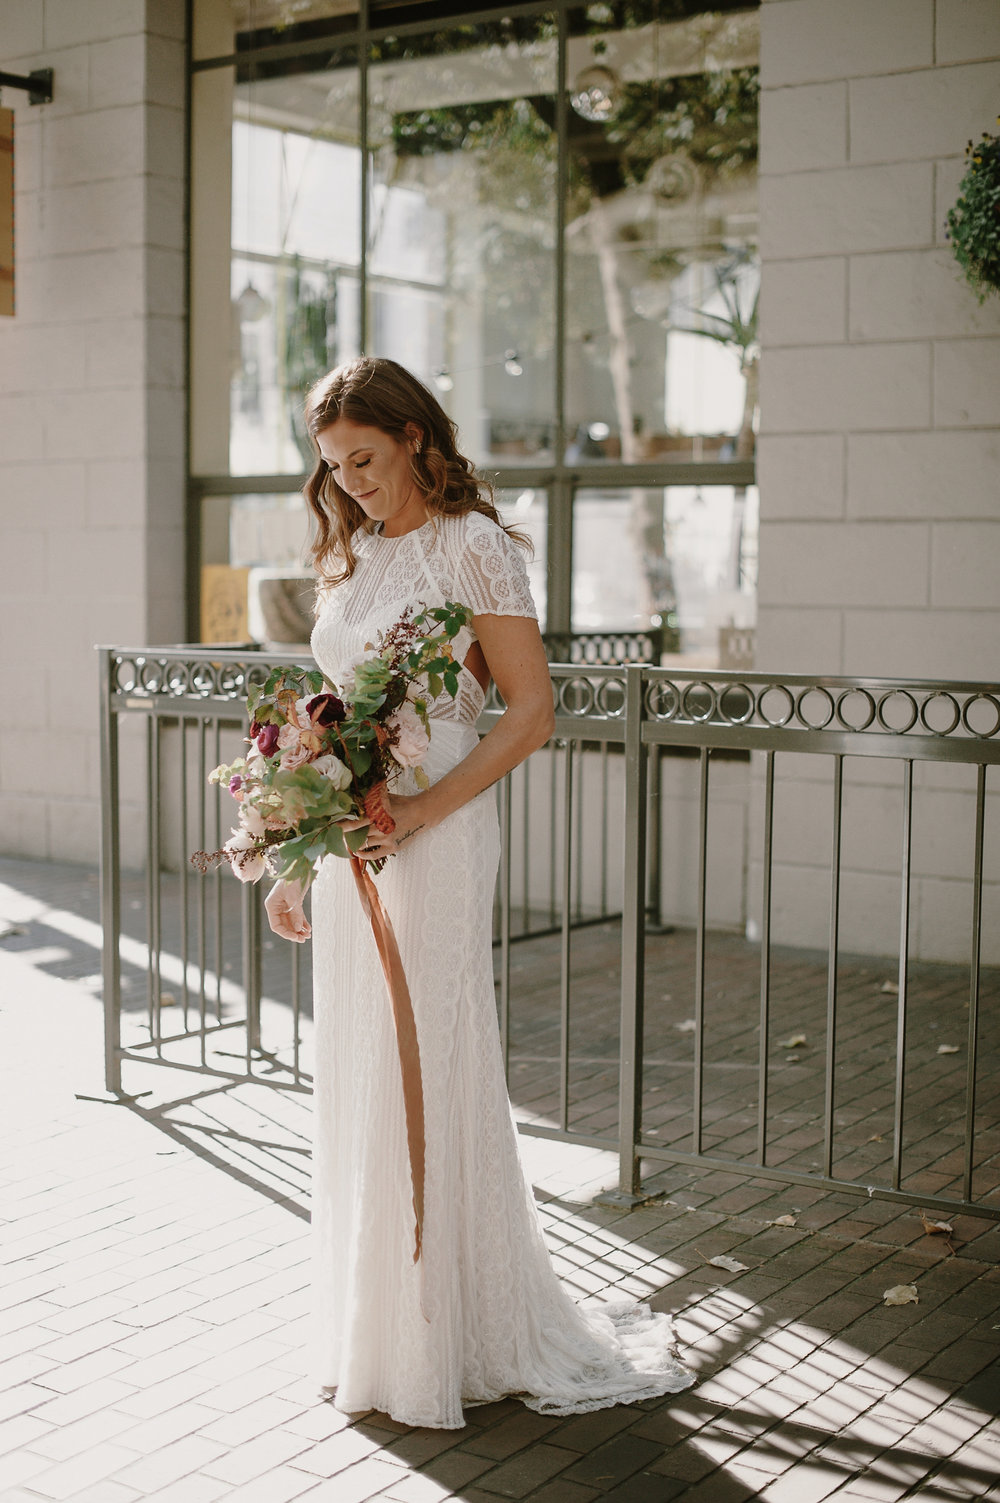 Downtown_Seattle_Wedding_Foundry_Sinclair_Moore019.JPG